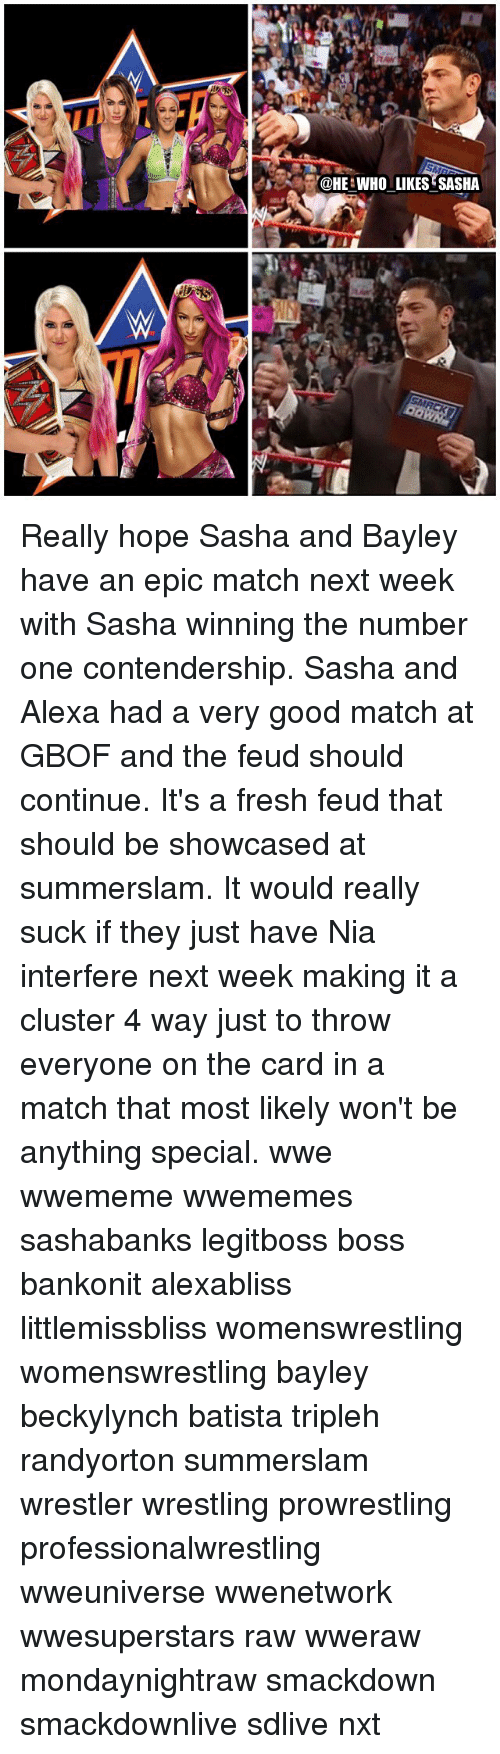 Batista: HE WHO LIKES?SASHA Really hope Sasha and Bayley have an epic match next week with Sasha winning the number one contendership. Sasha and Alexa had a very good match at GBOF and the feud should continue. It's a fresh feud that should be showcased at summerslam. It would really suck if they just have Nia interfere next week making it a cluster 4 way just to throw everyone on the card in a match that most likely won't be anything special. wwe wwememe wwememes sashabanks legitboss boss bankonit alexabliss littlemissbliss womenswrestling womenswrestling bayley beckylynch batista tripleh randyorton summerslam wrestler wrestling prowrestling professionalwrestling wweuniverse wwenetwork wwesuperstars raw wweraw mondaynightraw smackdown smackdownlive sdlive nxt